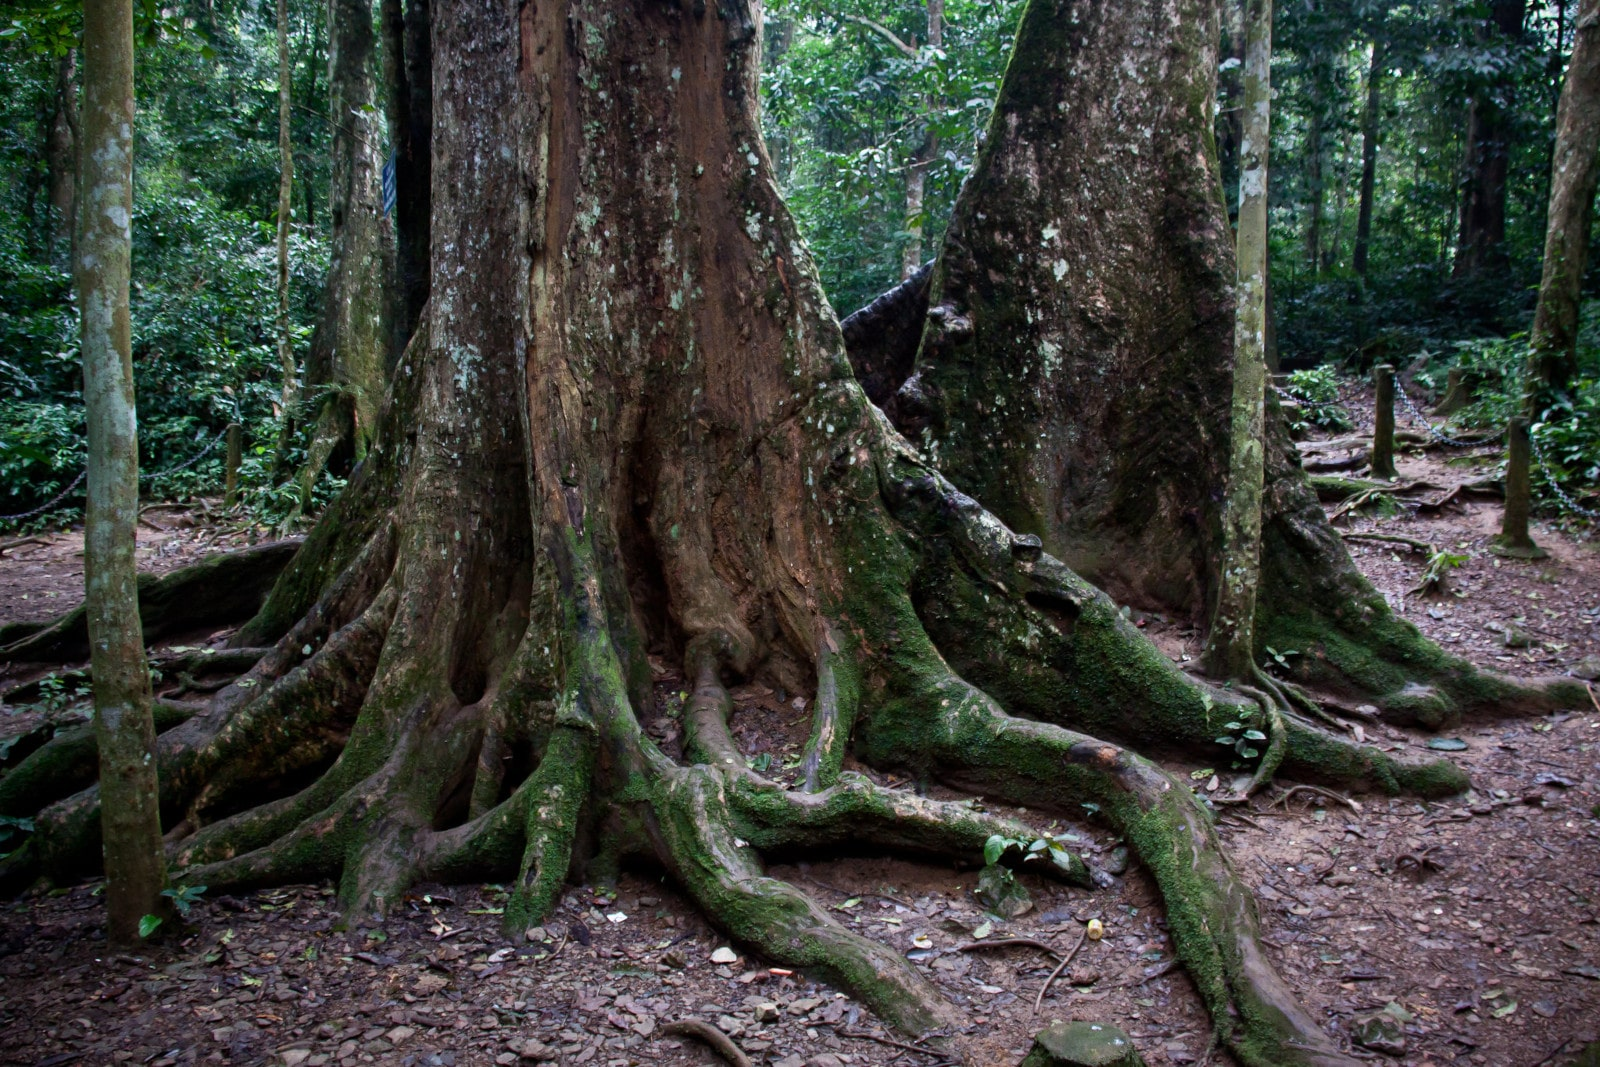 Image of the thousand year old tree in Cuc Phuong National Park in Vietnam